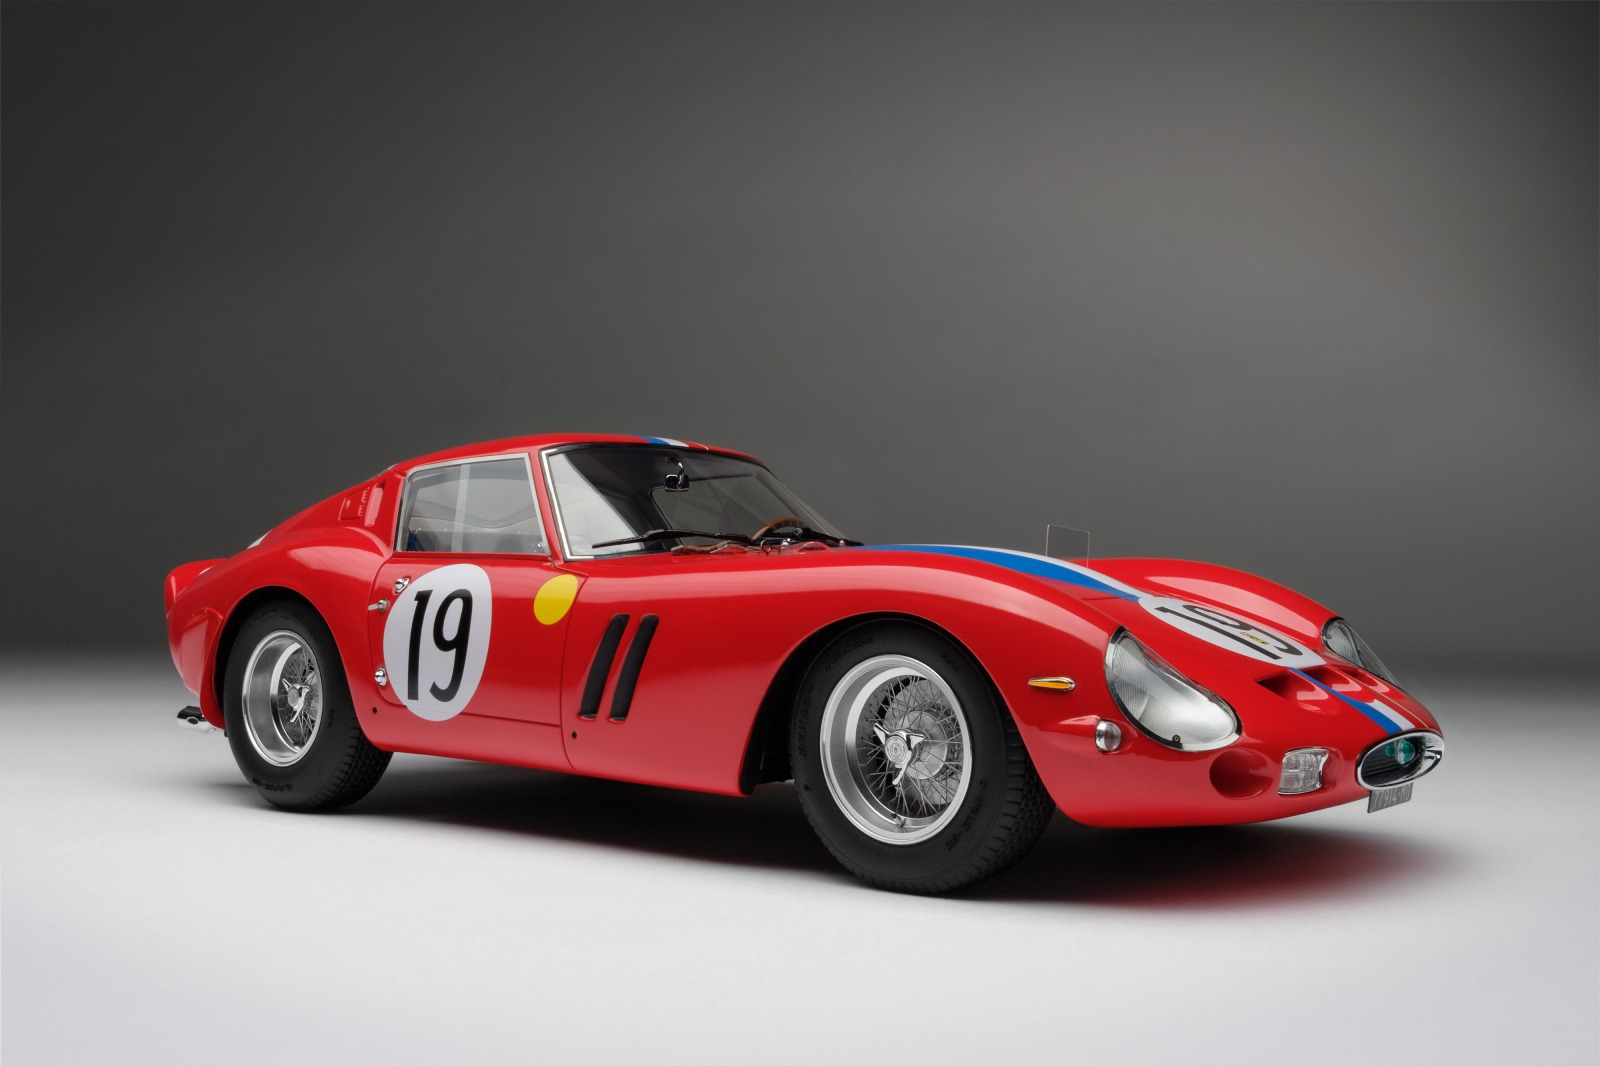 Amalgam Collection アマルガム・コレクション 1:18 1962年ルマン24時間 GT Class 優勝 フェラーリ 250 GTO #19Ferrari 250 GTO 24 Hours of Le Mans 1962 GT class winner car #19 driven by Pierre Noblet and Jean Guichet 1/18 by Amalgam Collection